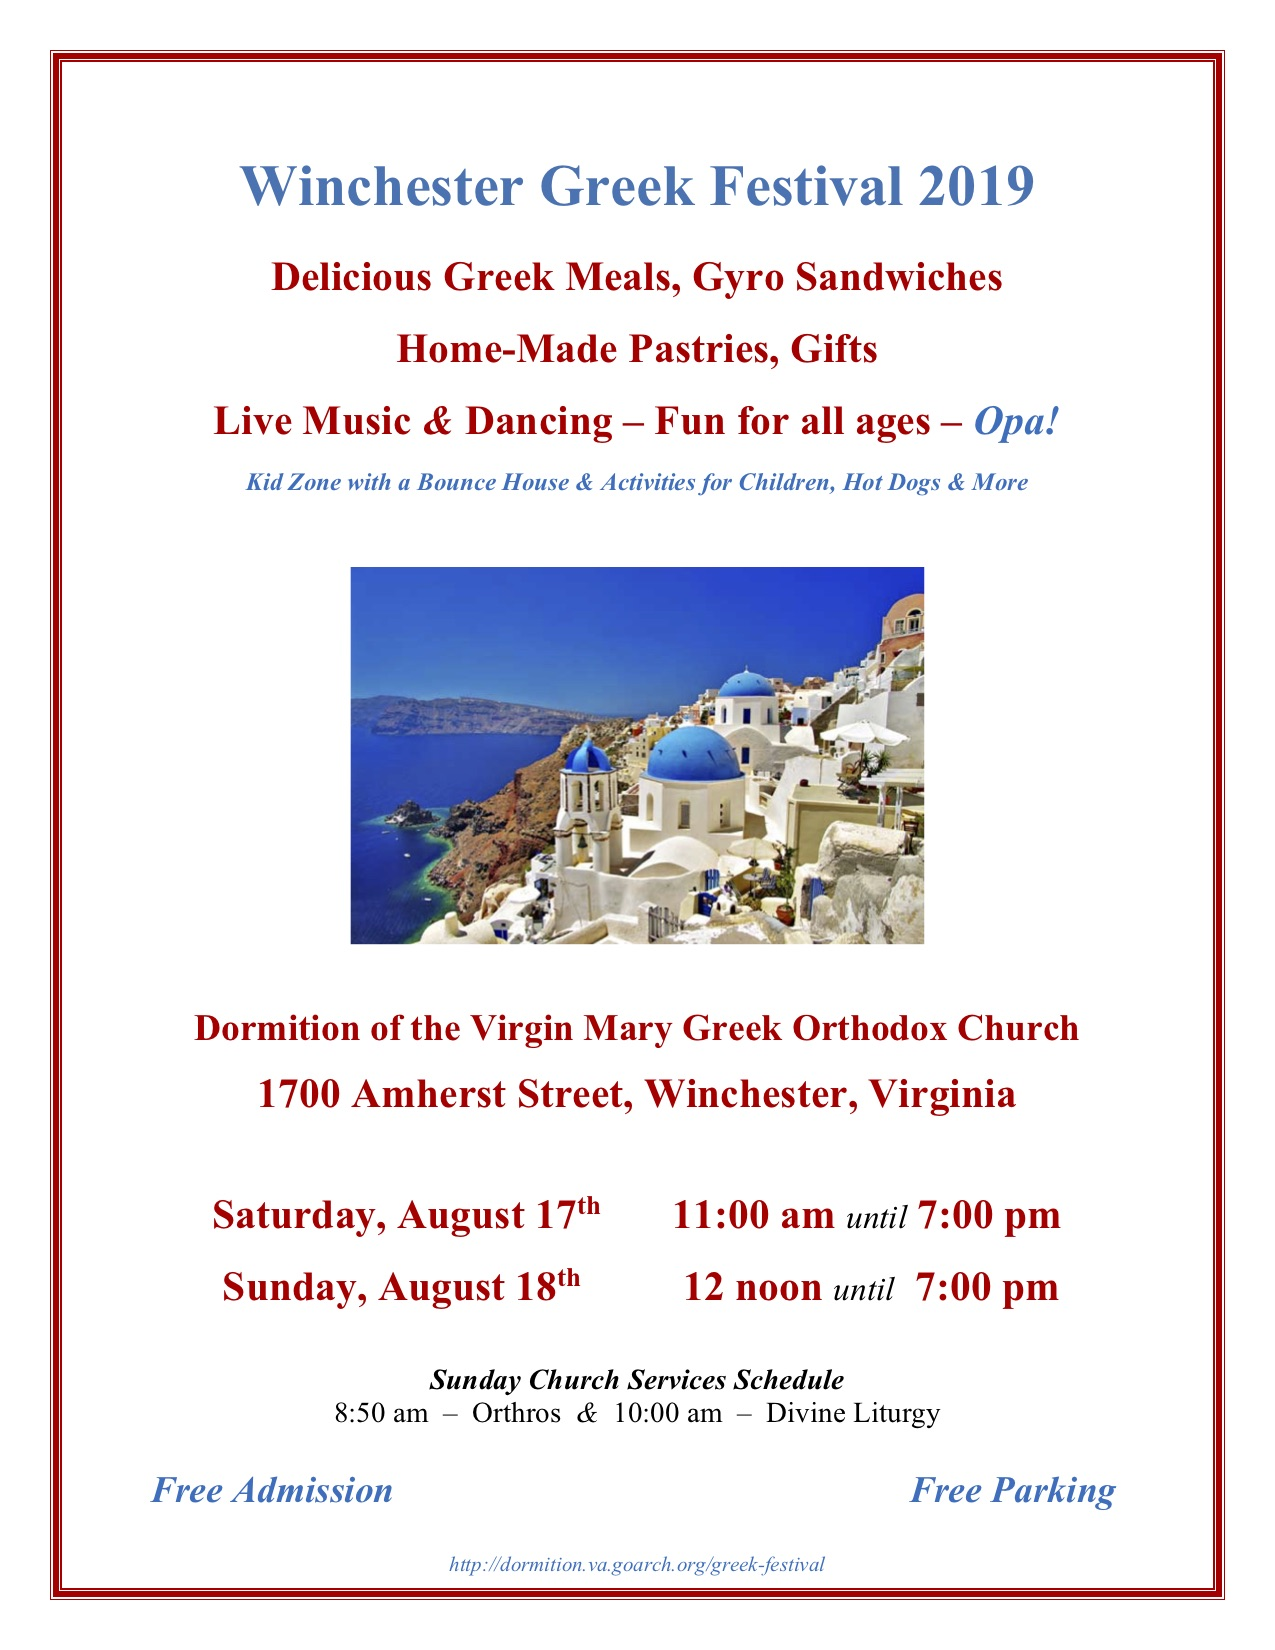 Winchester Greek Festival | Dormition of the Virgin Mary